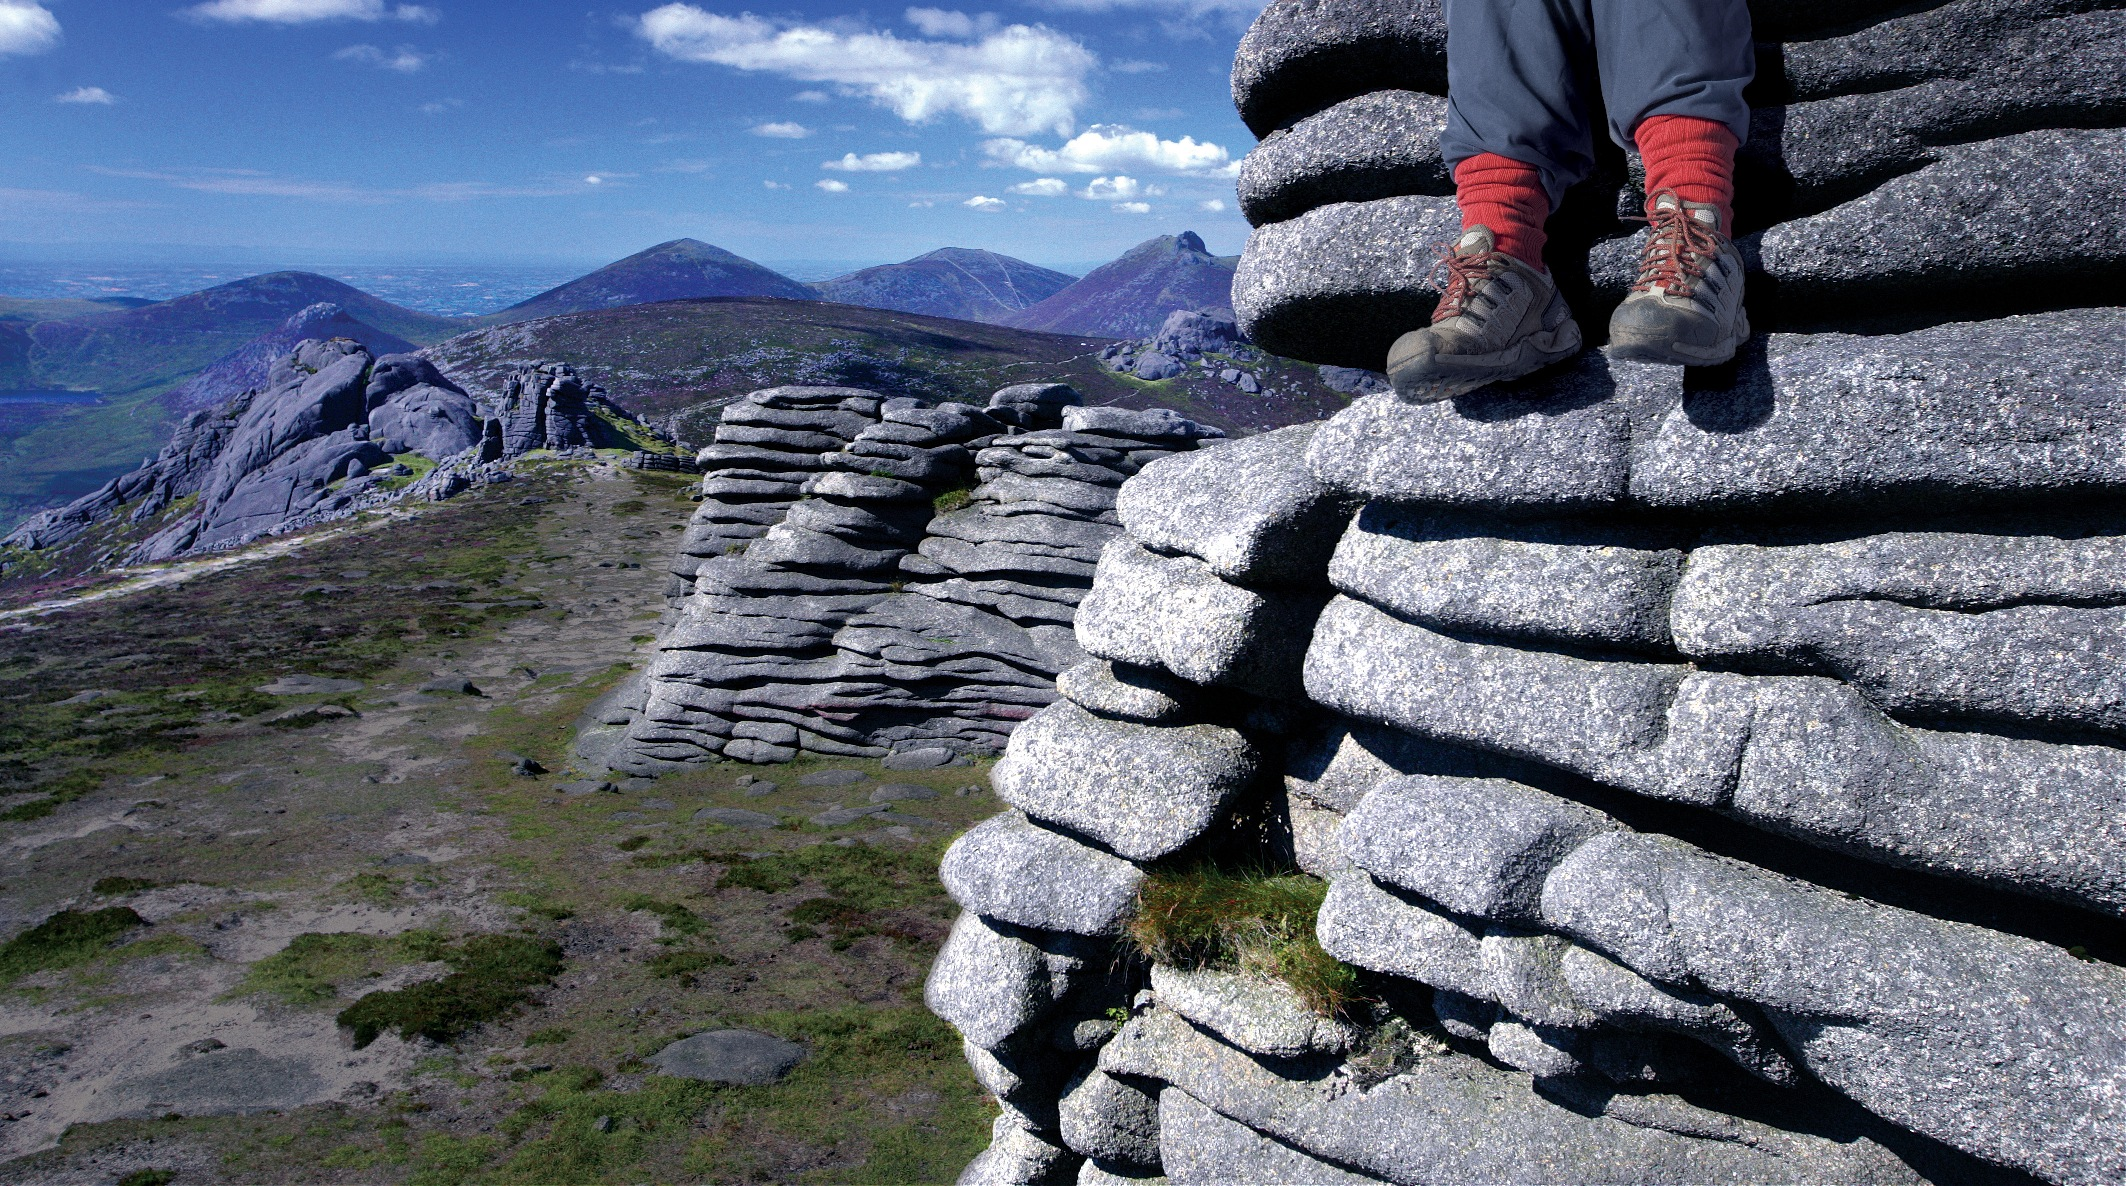 Legs overhanging from a rock showing their hiking boots